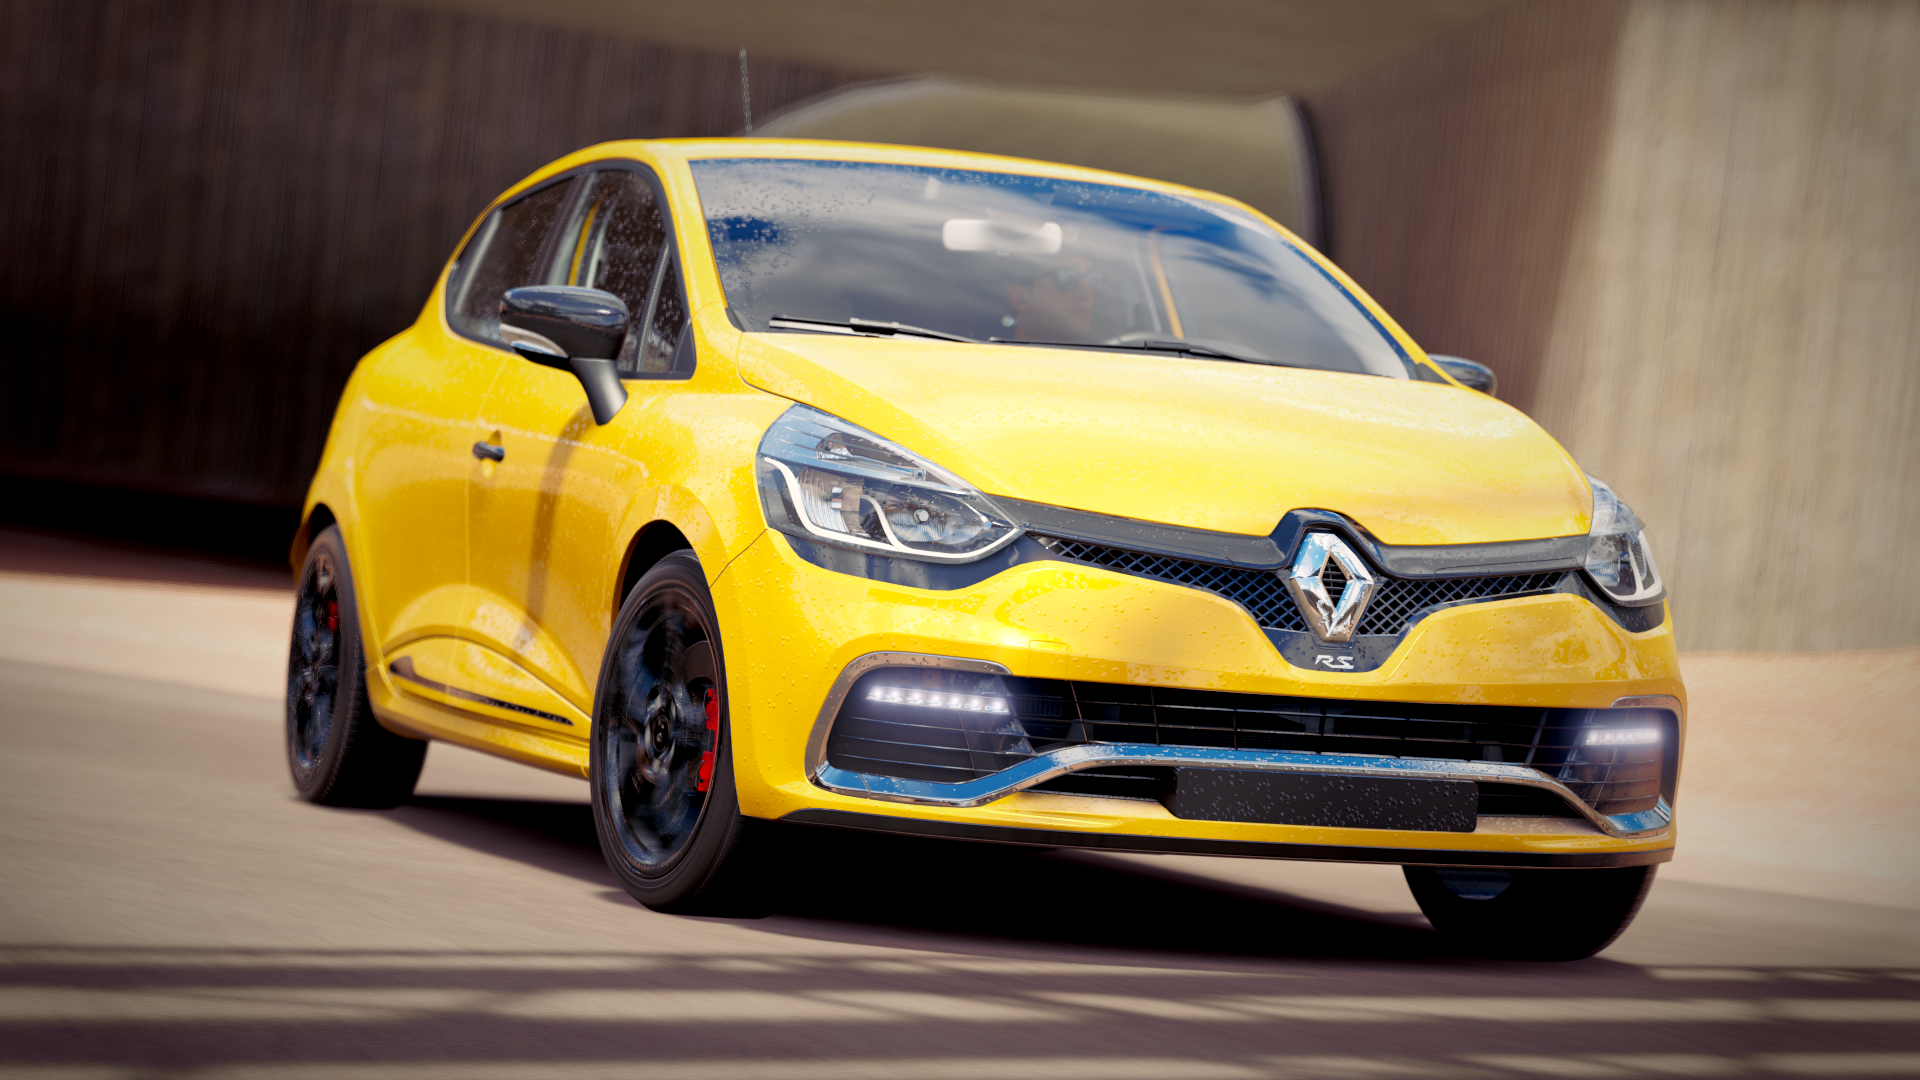 2013 Renault Clio RS 200   Photo By Focusatze